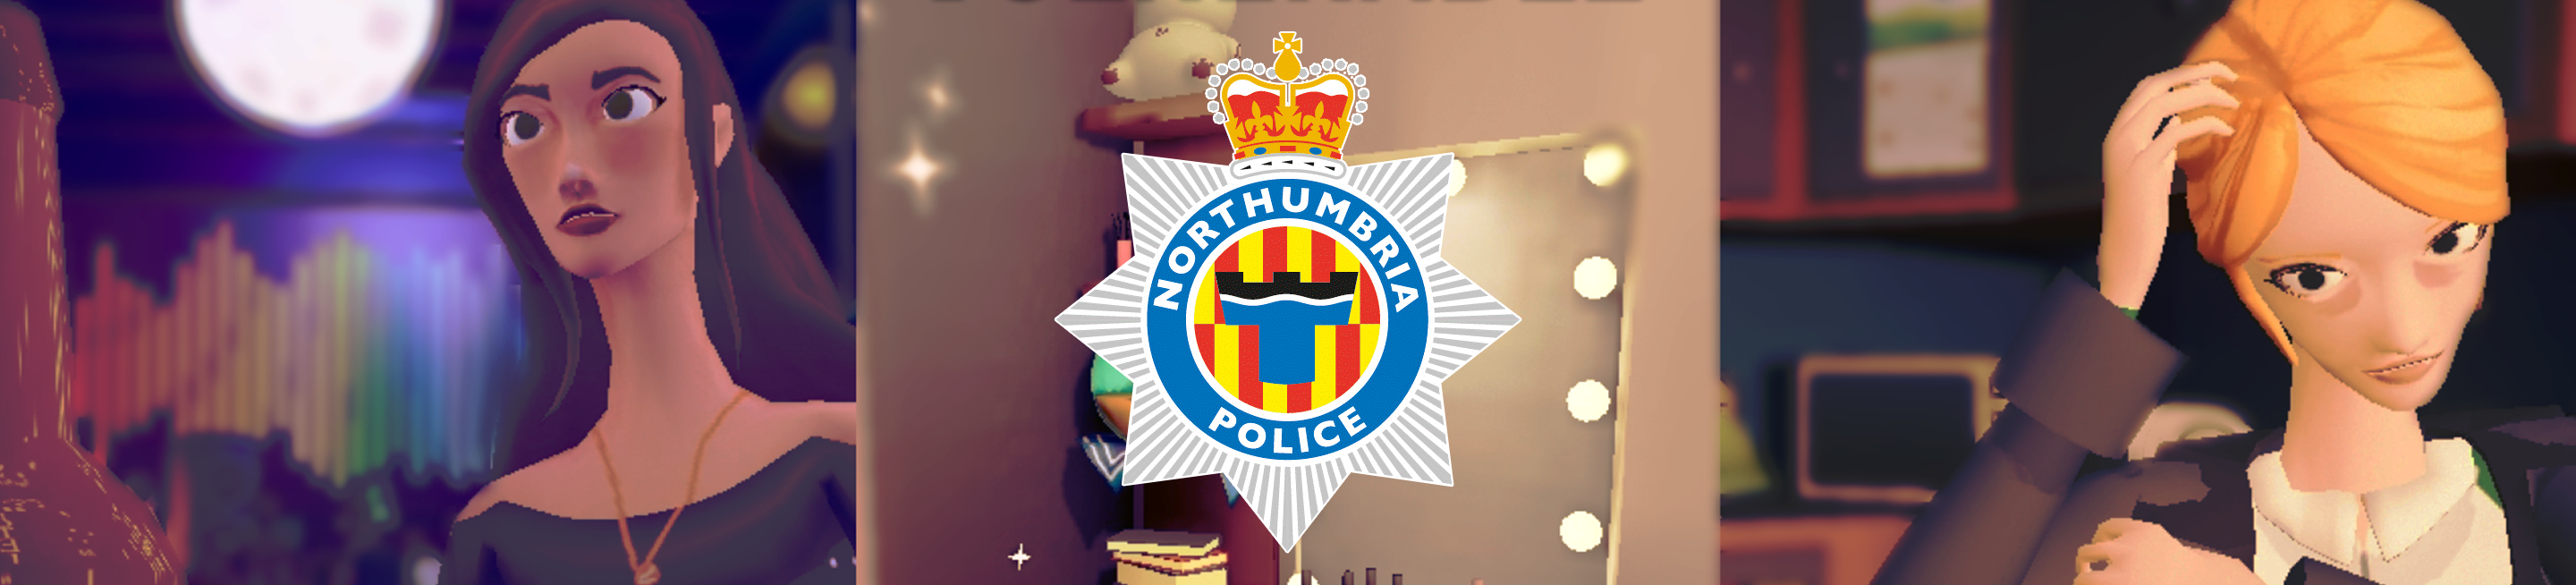 Northumbria Police Banner